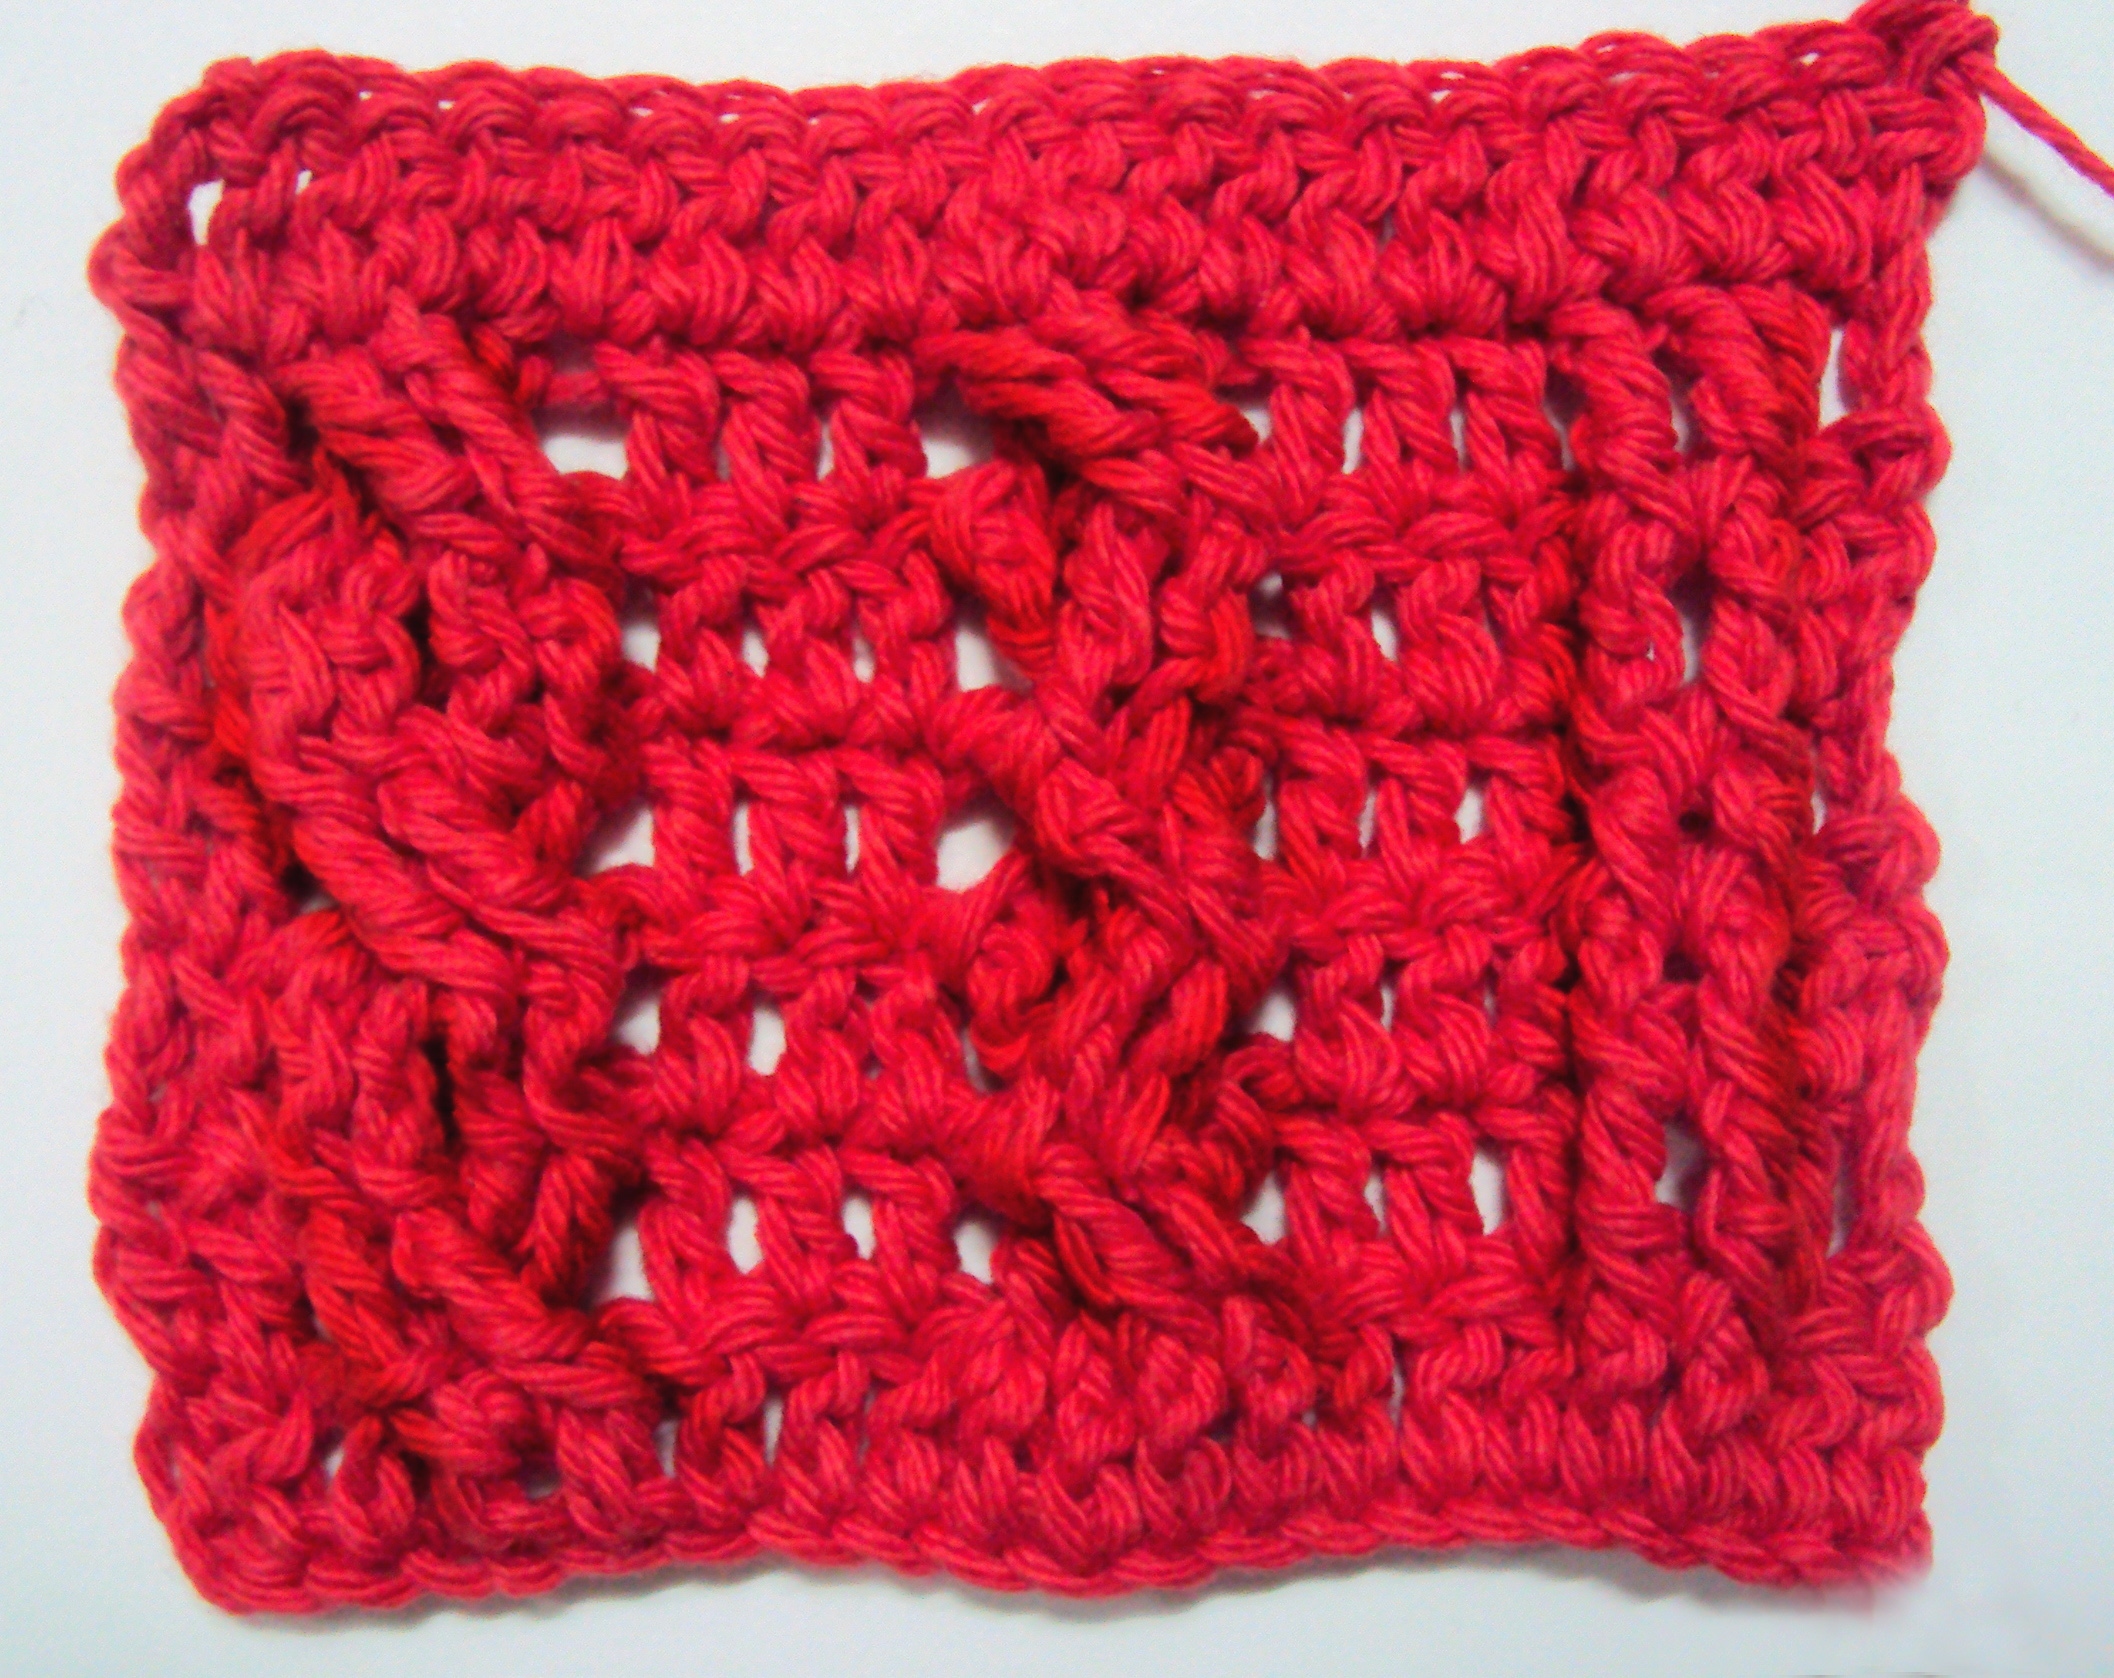 Patterns To Crochet : ... How to Crochet: Cable Stitches - Crochet Patterns, Tutorials and News